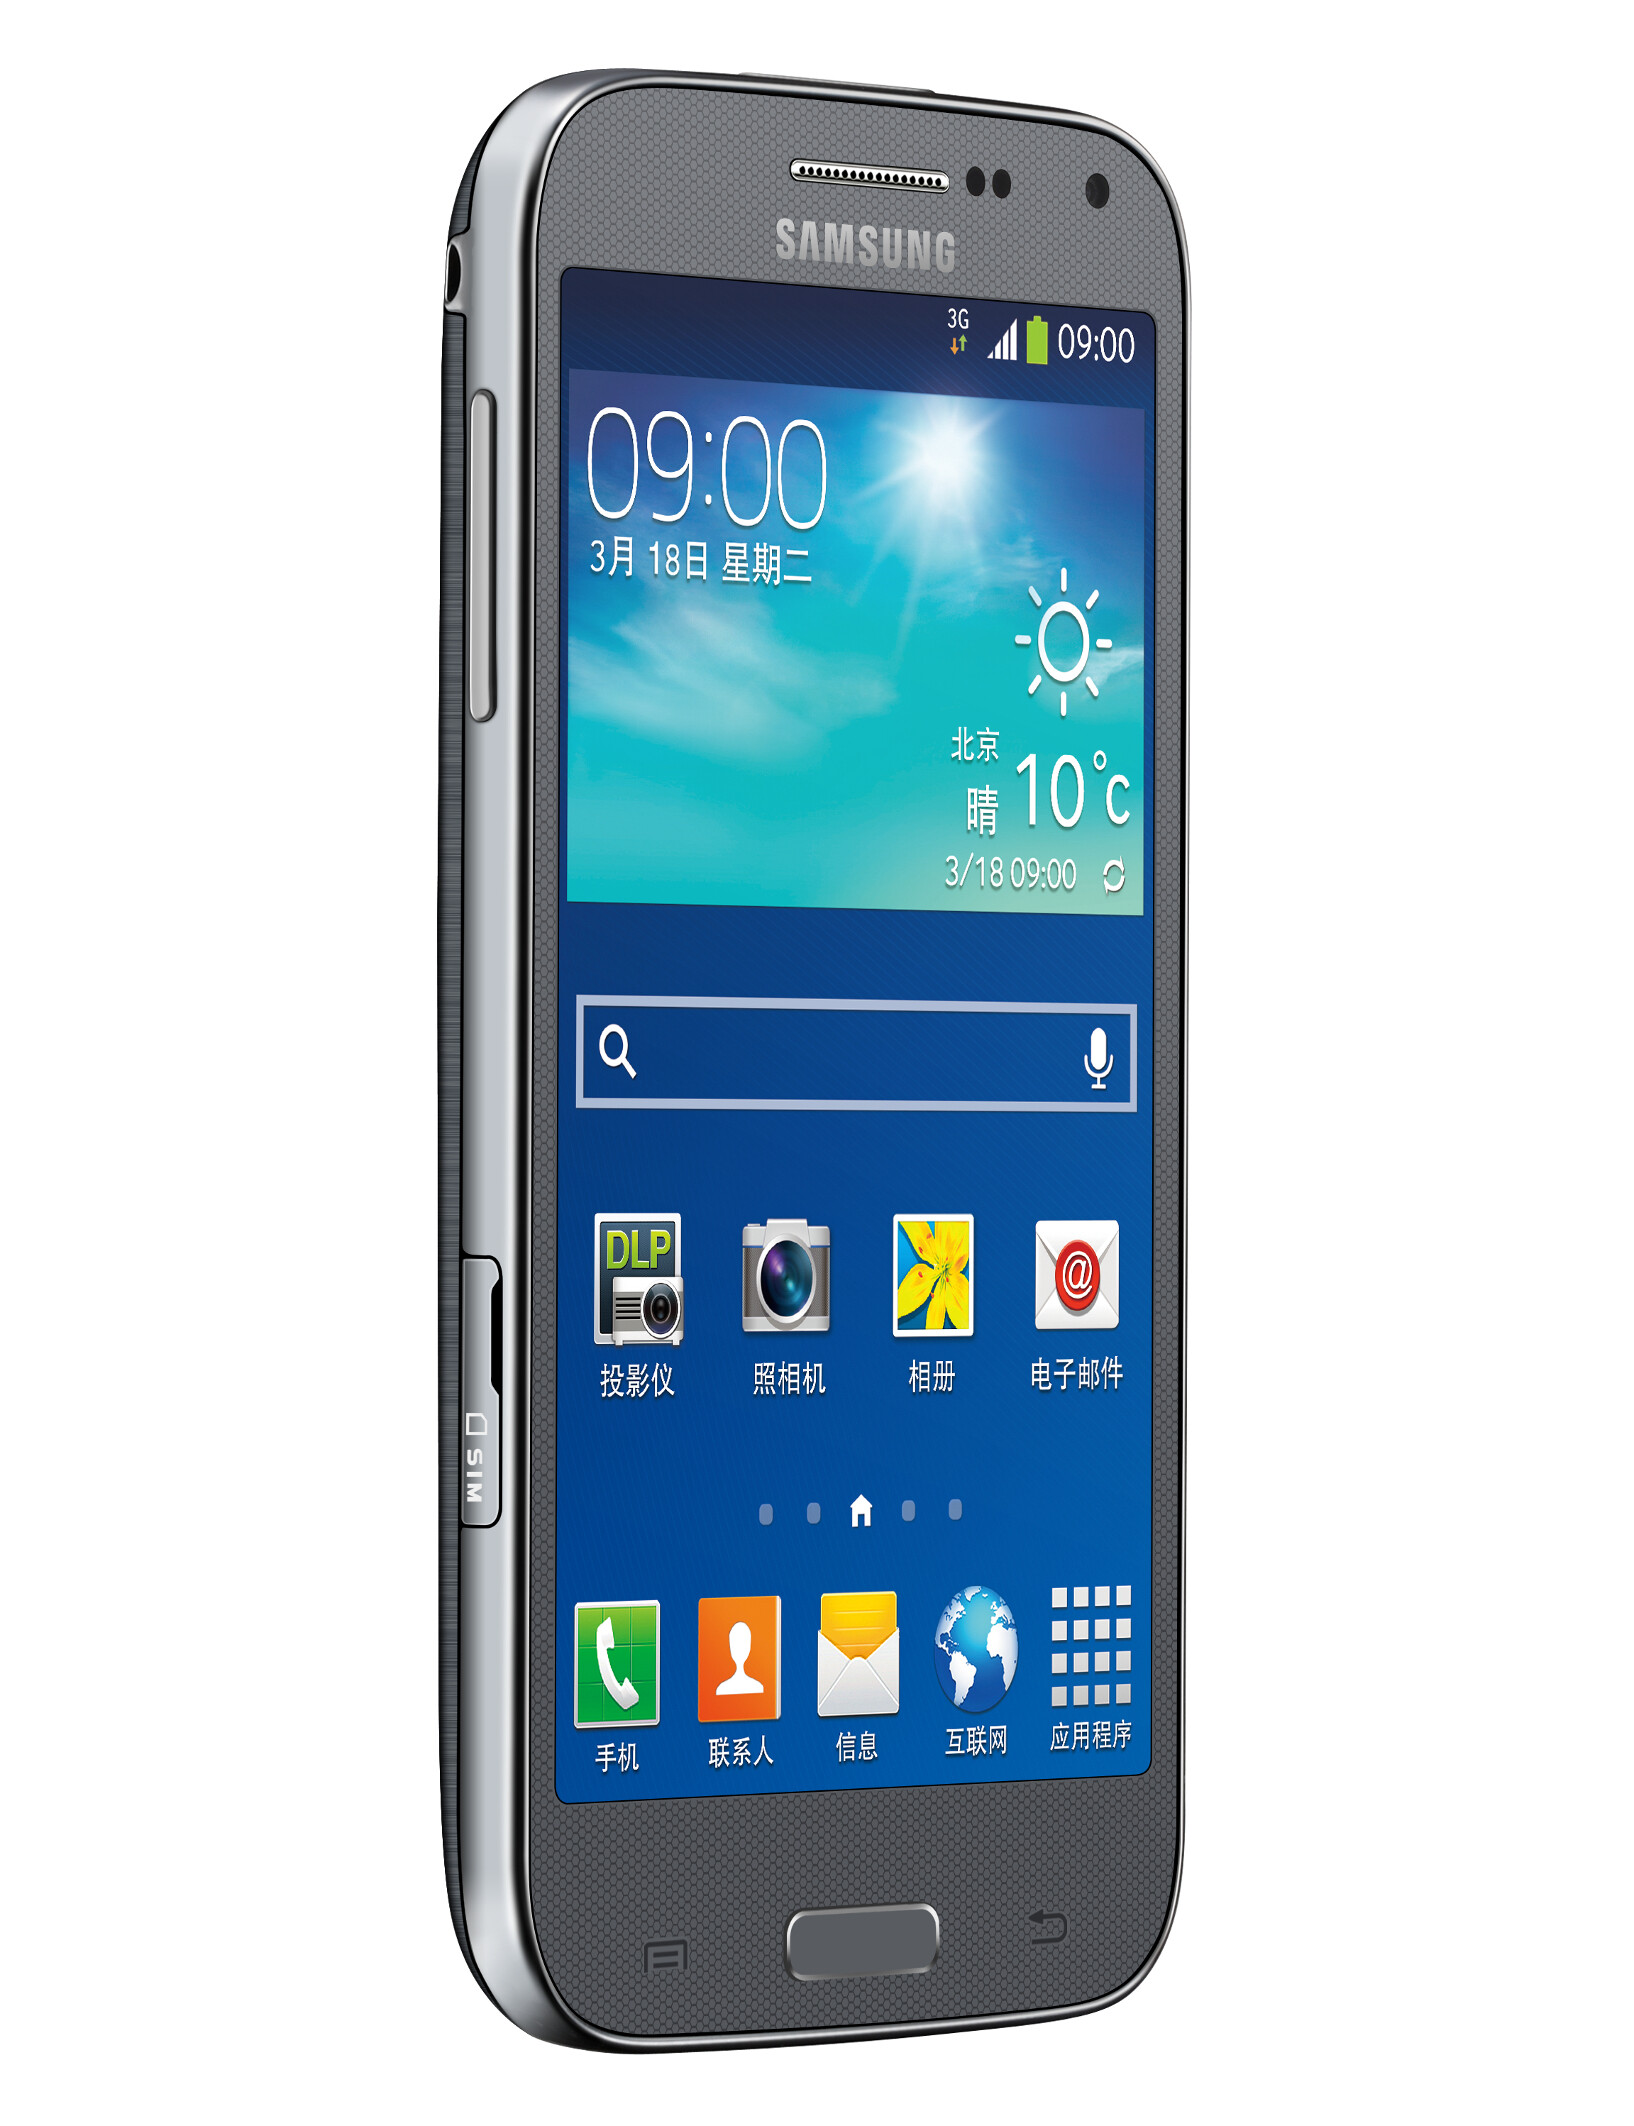 Samsung Galaxy Beam : prijzen, specs & reviews - GSMinfo.nl